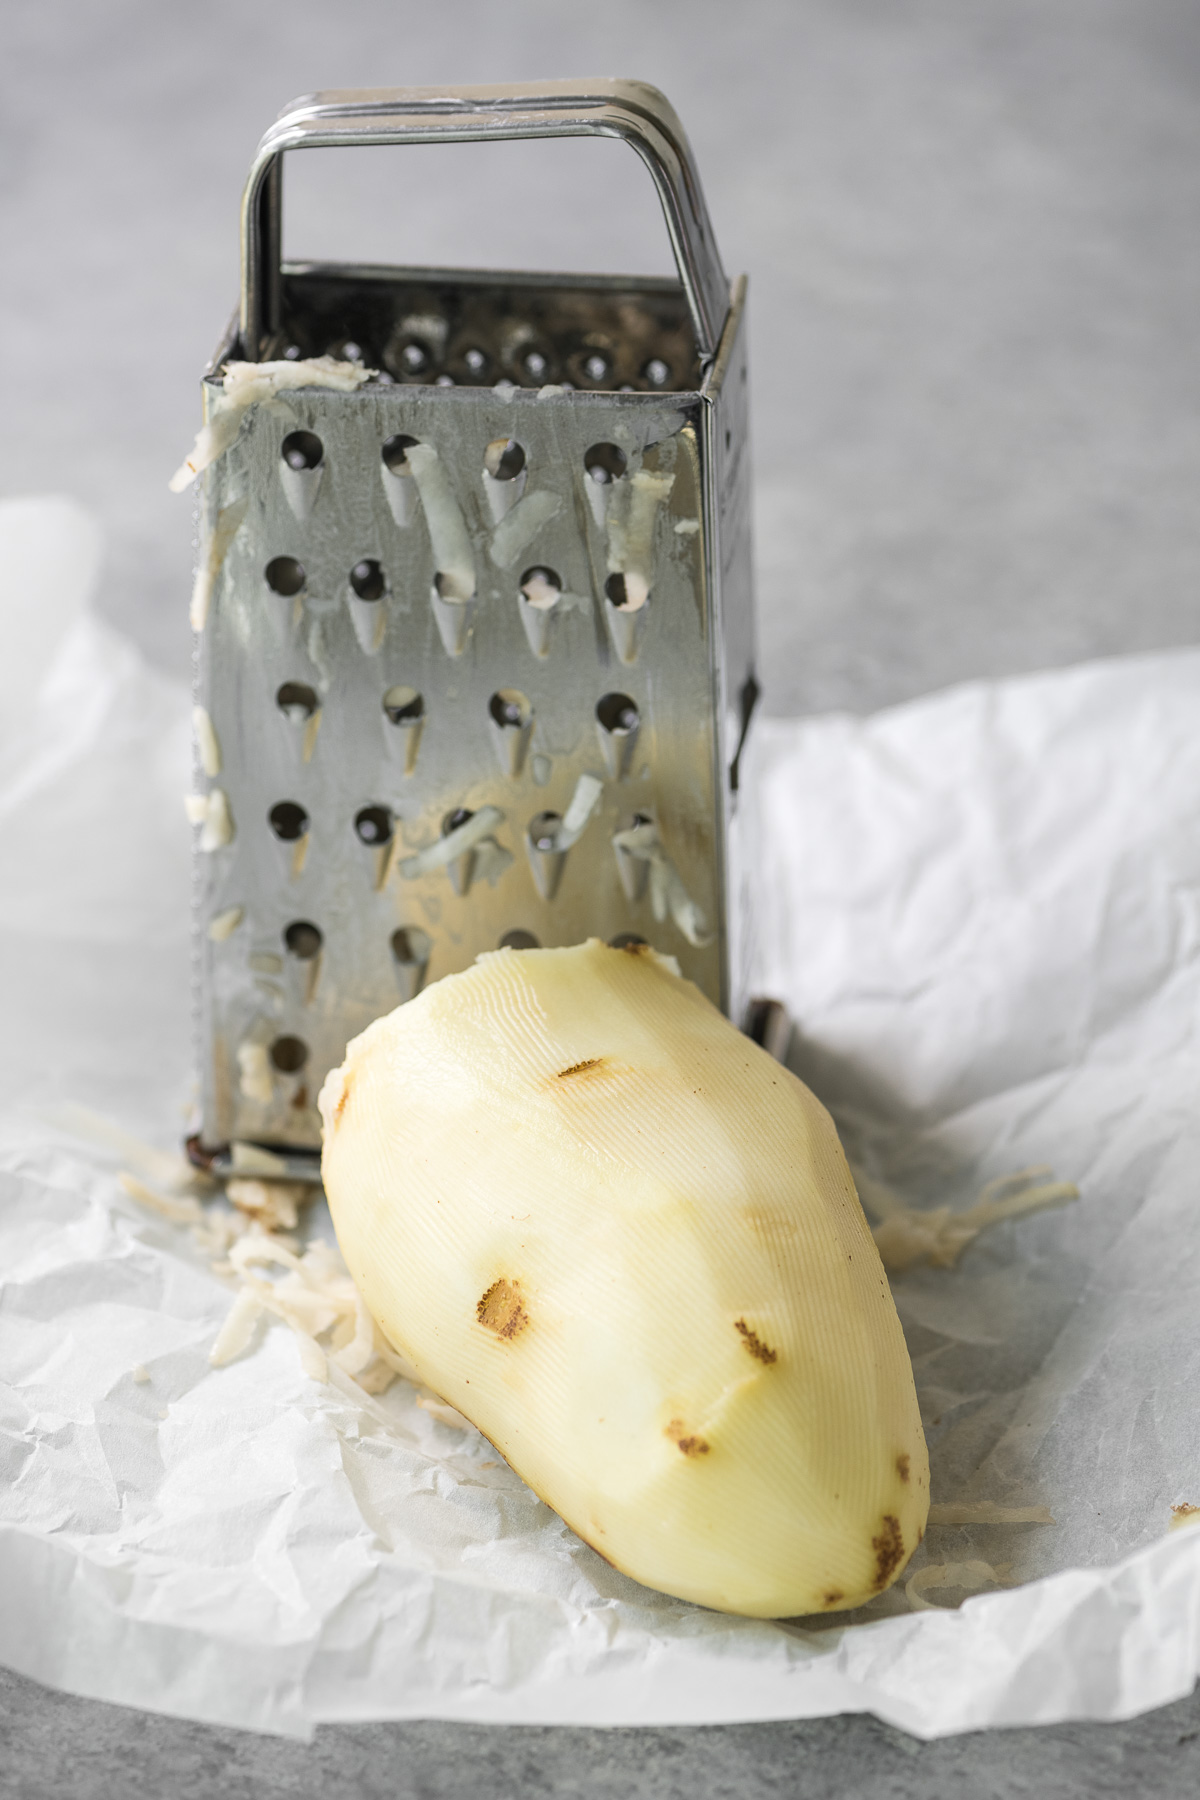 grating a potato on a box grater